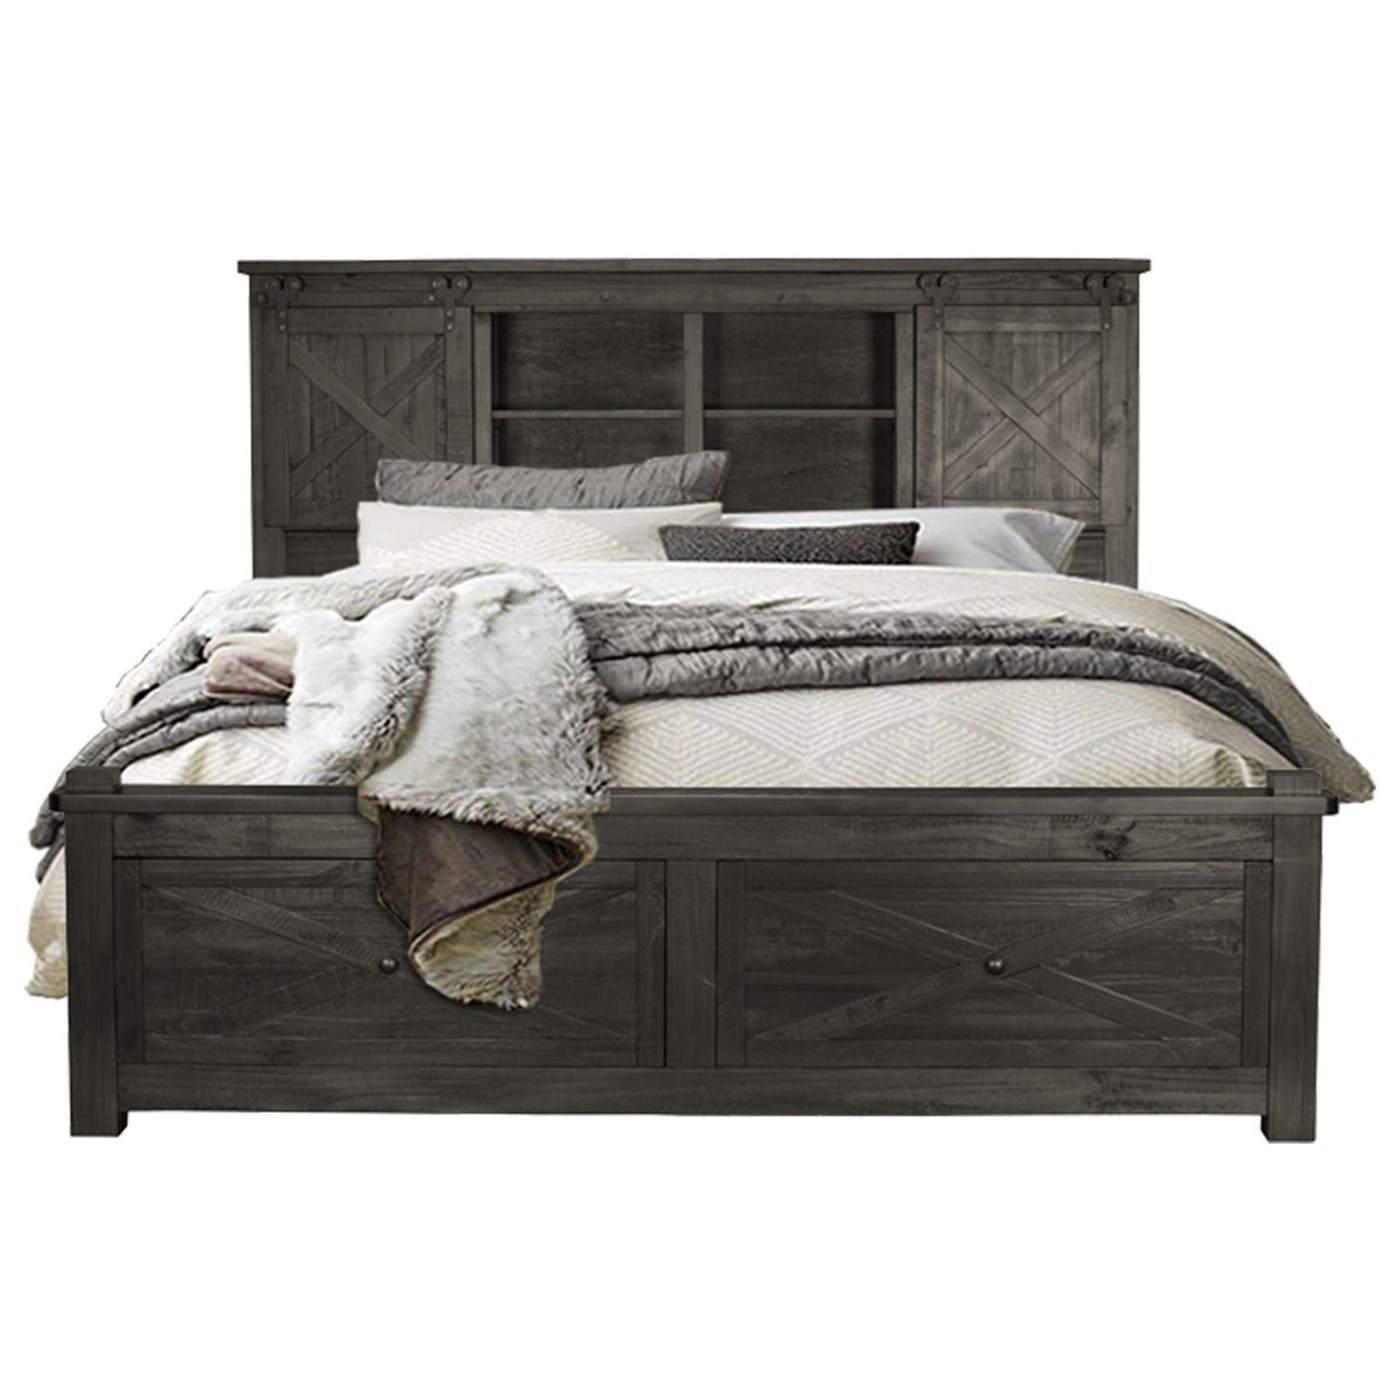 King Storage Bed with Footboard Bench